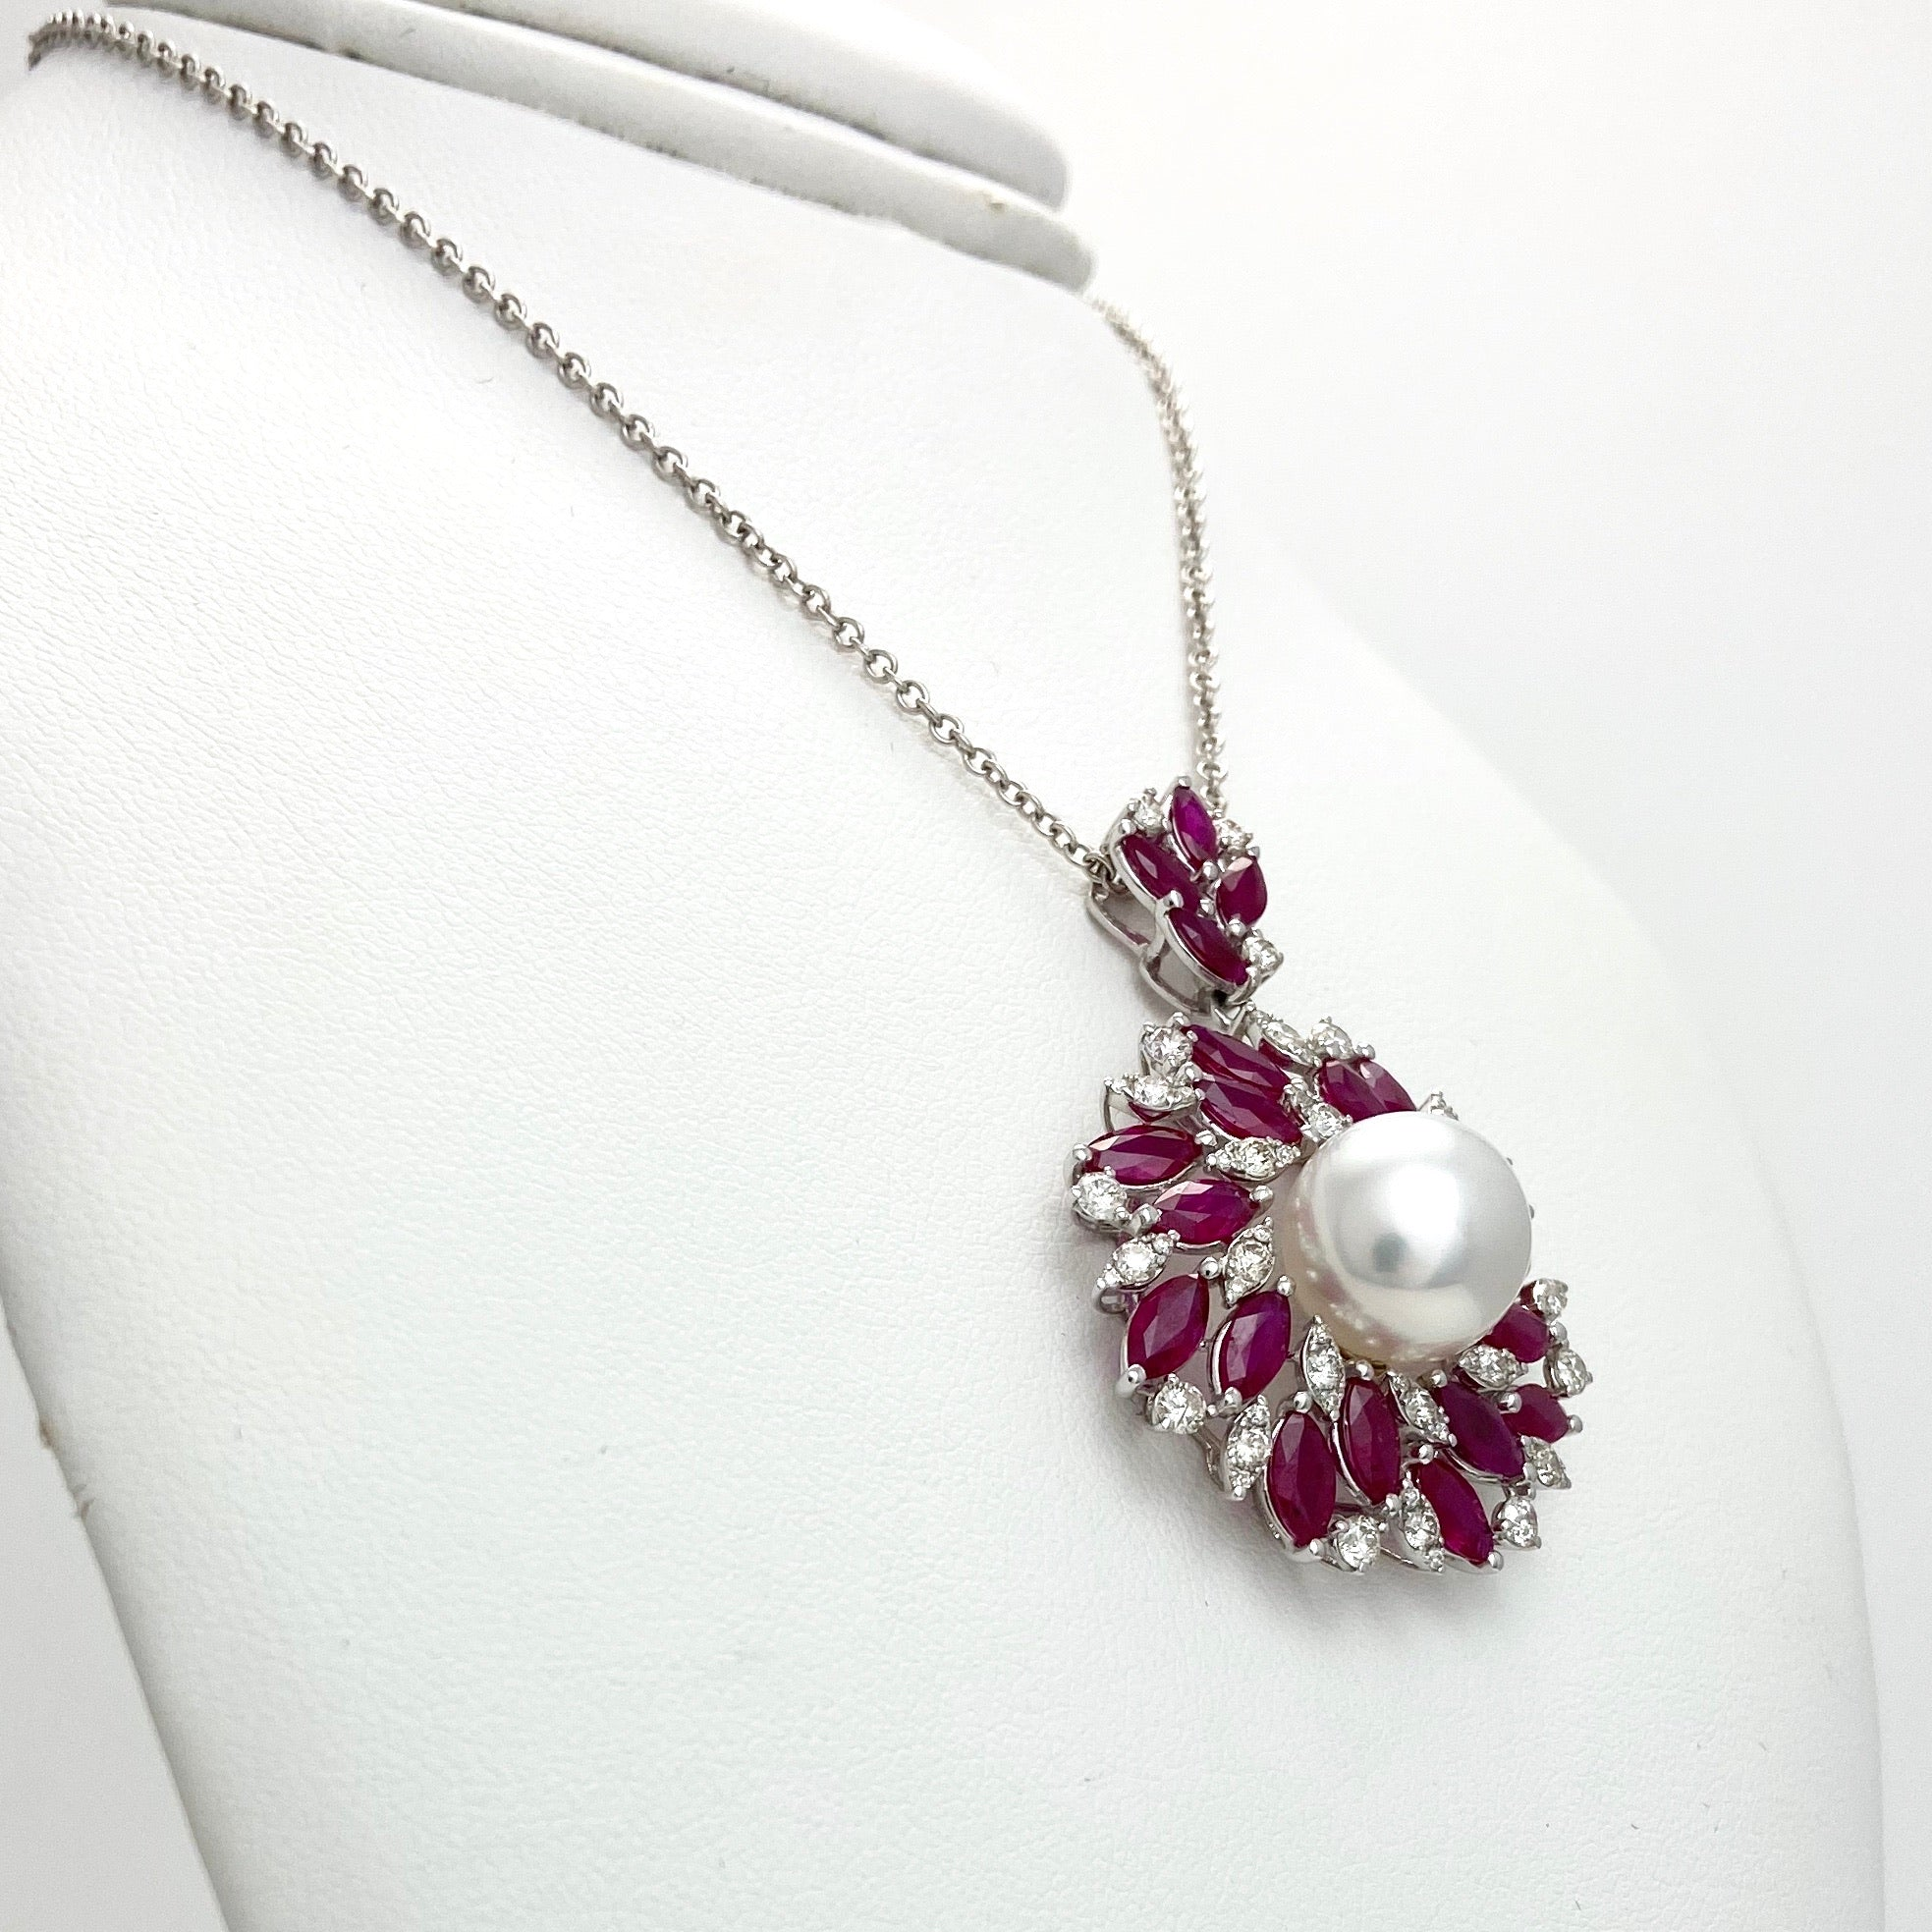 18K White Gold Chain & Pendant with Pearl, Diamonds and Rubies